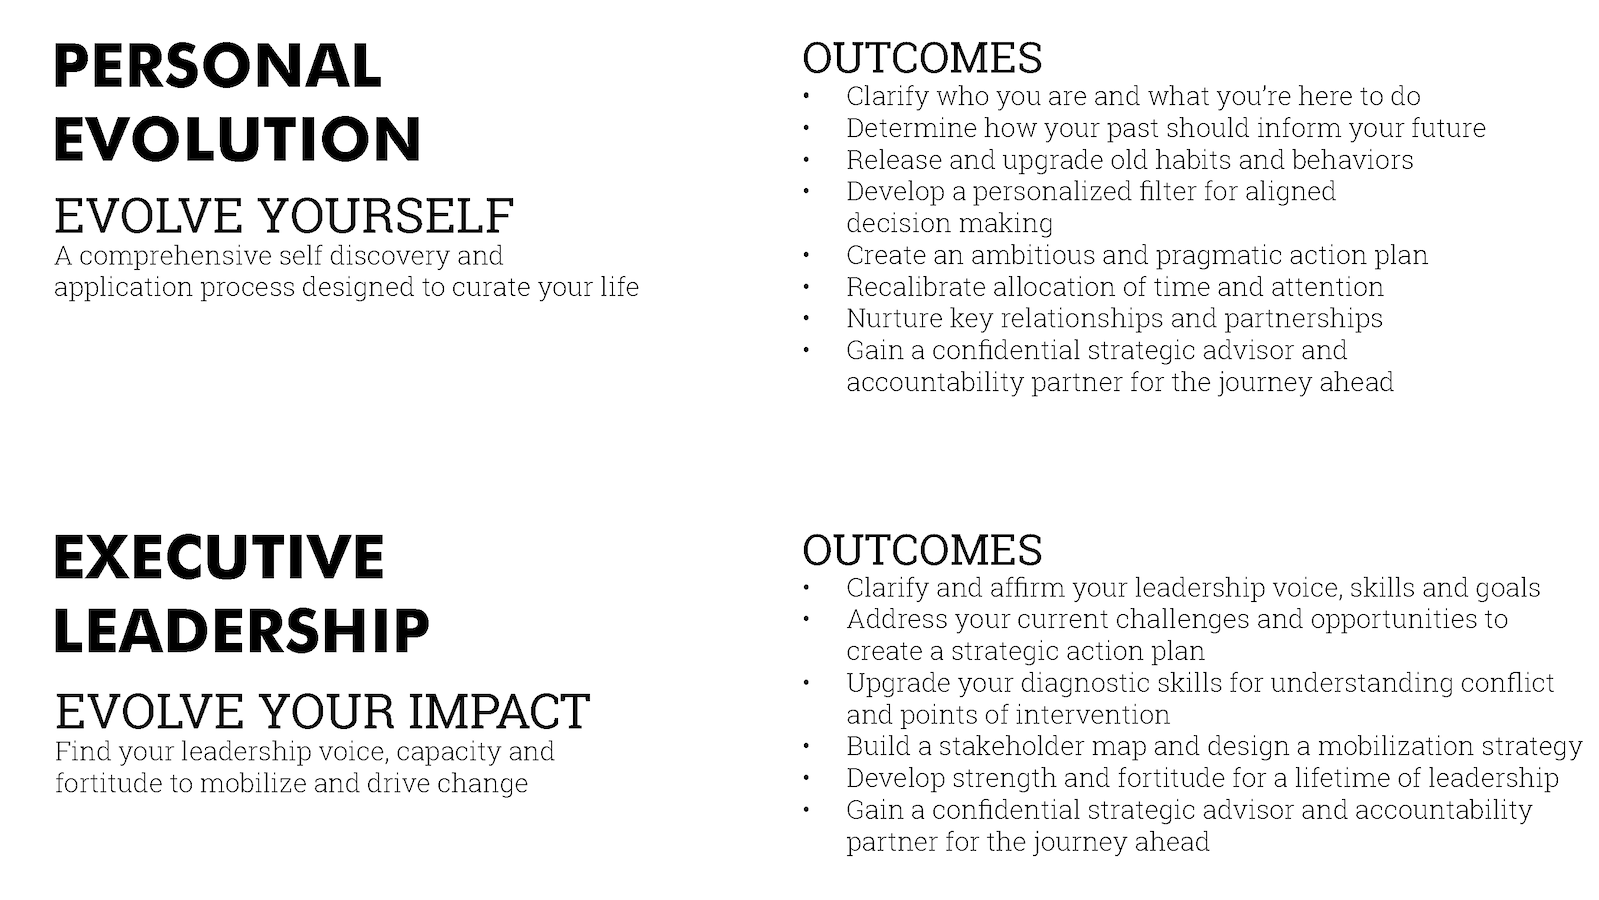 Outcomes_New-02-02.png